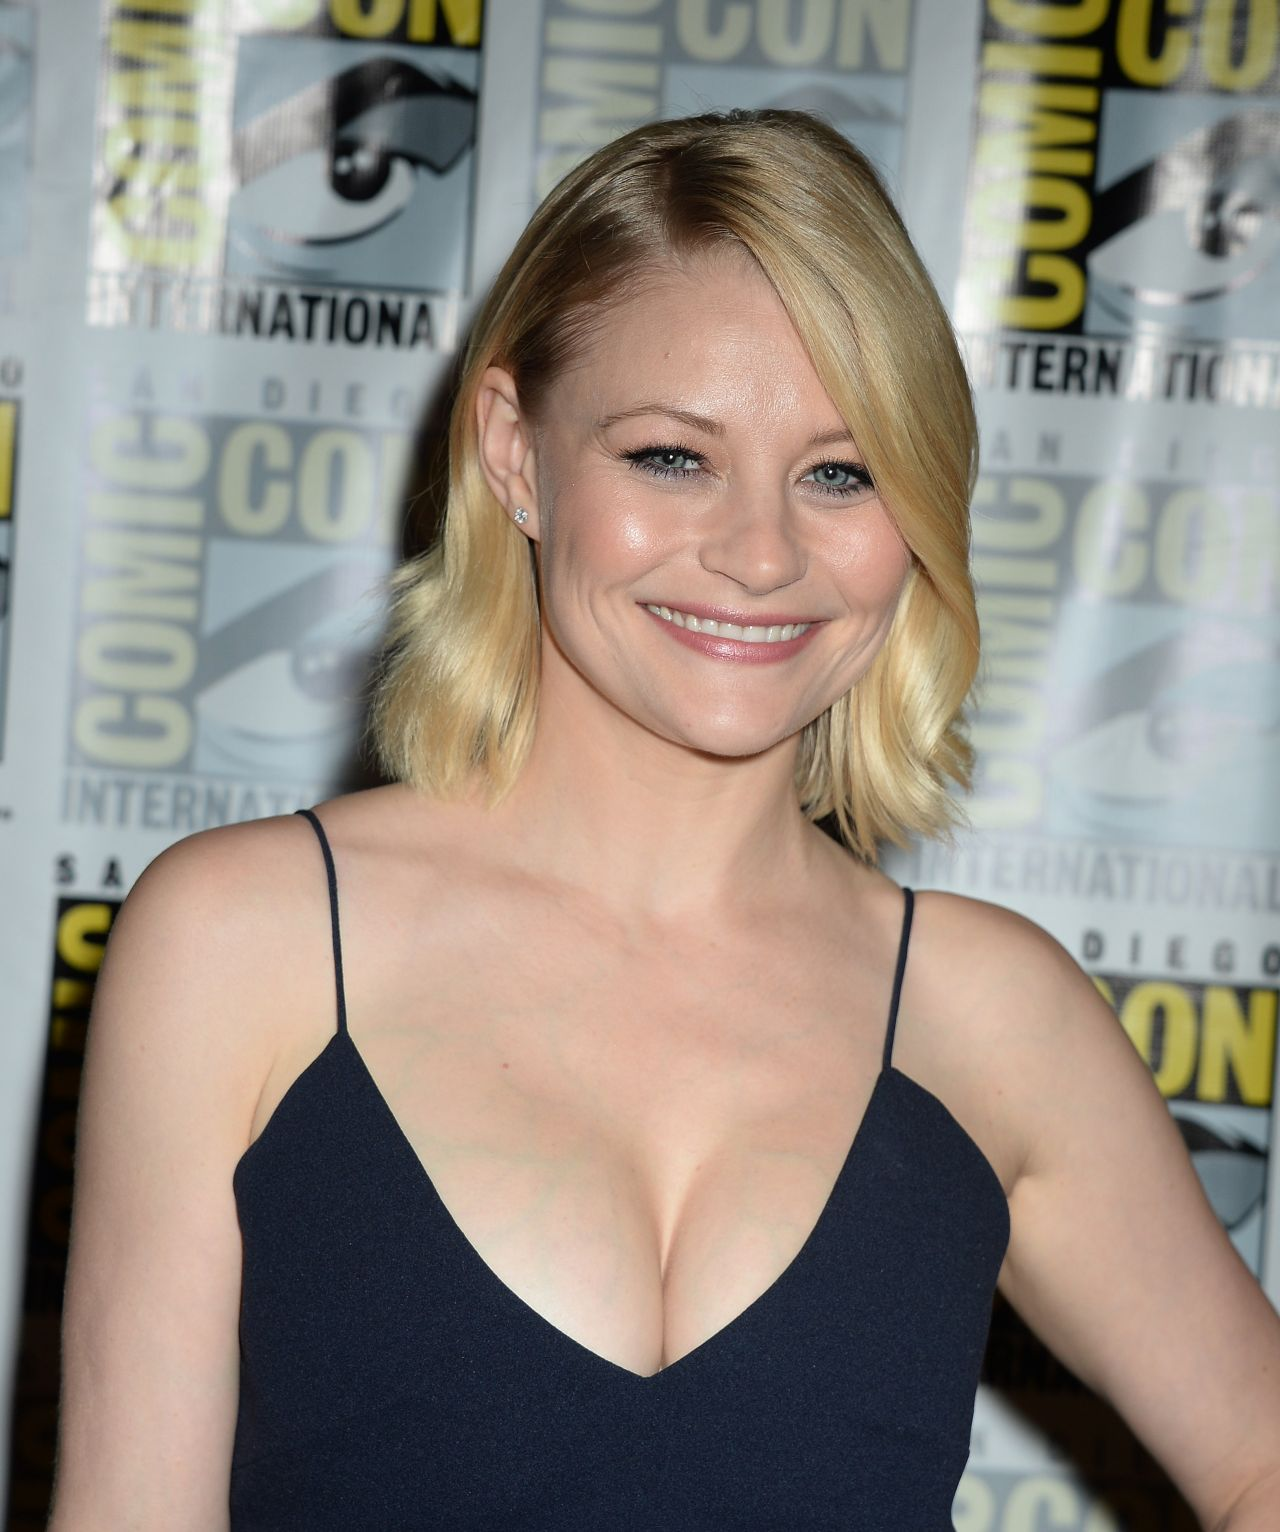 Emilie De Ravin Once Upon A Time Press Line At Comic